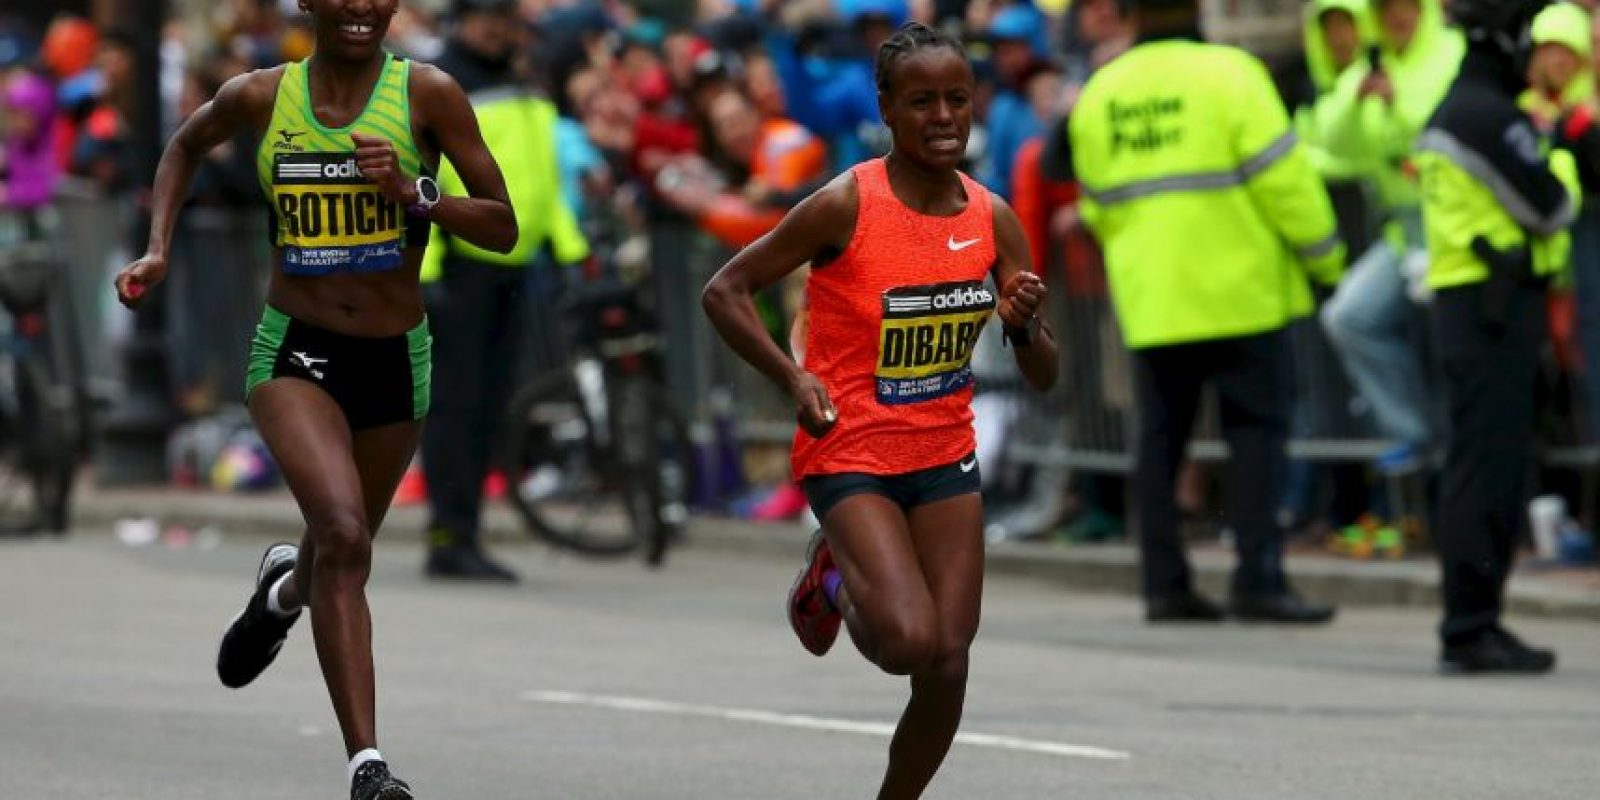 La carrera se corre desde Hopkinton a Boston. Foto: Getty Images